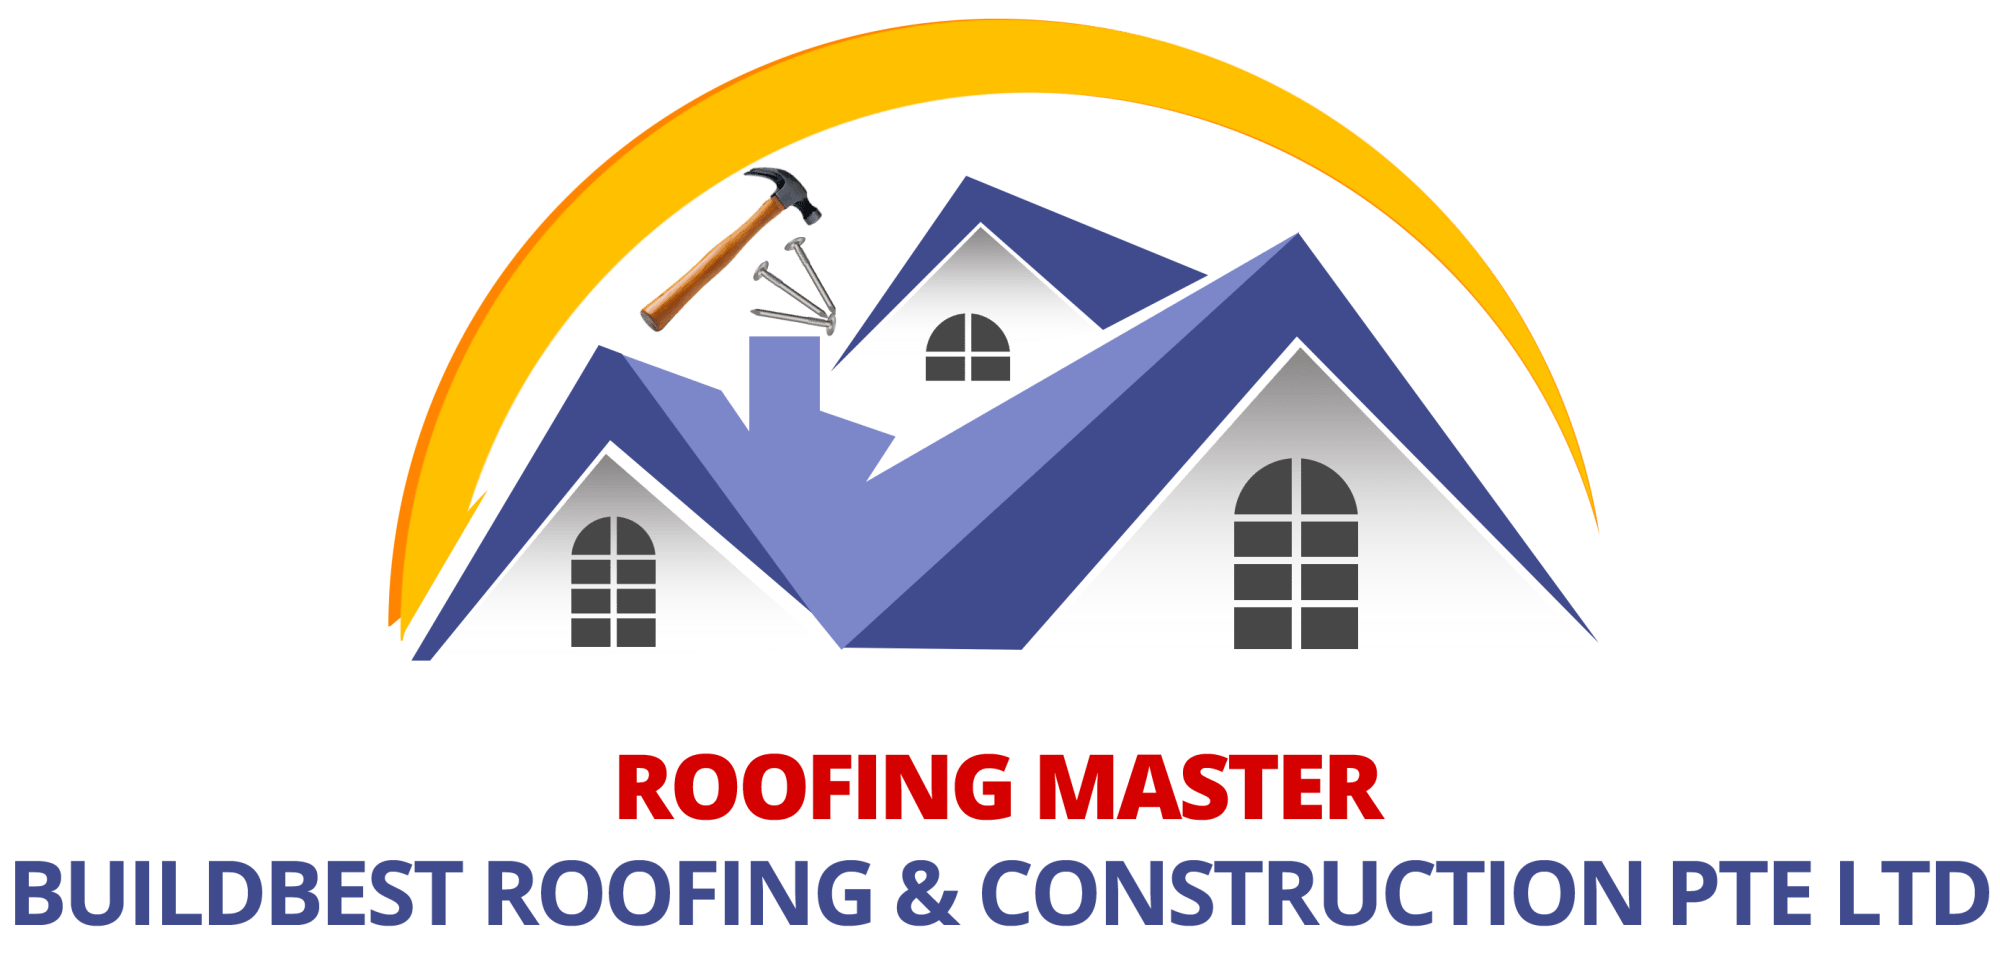 hight resolution of roofing clipart house paint metal contractor buildbest construction